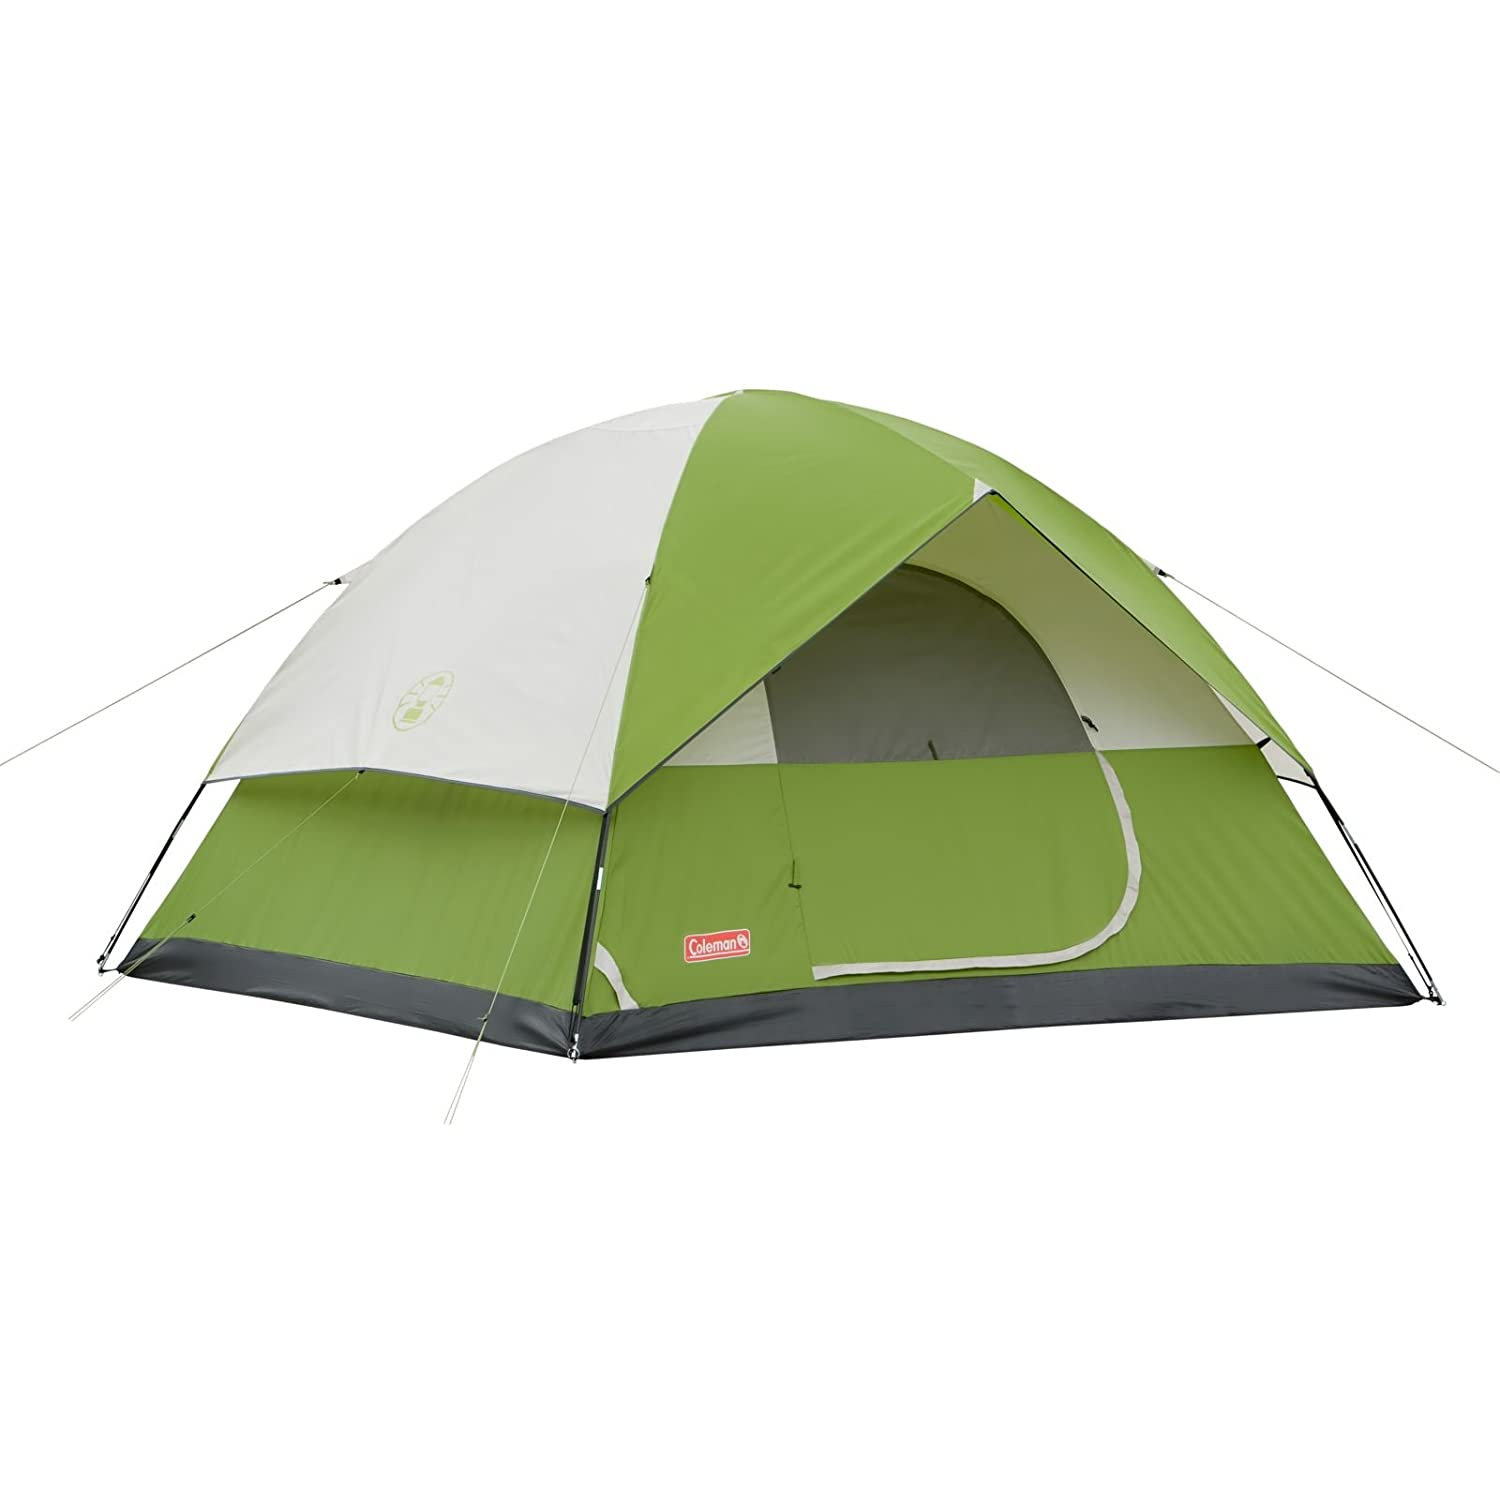 Amazon.com  Coleman Sundome 6-Person Dome Tent  Family Tents  Sports u0026 Outdoors  sc 1 st  Amazon.com & Amazon.com : Coleman Sundome 6-Person Dome Tent : Family Tents ...